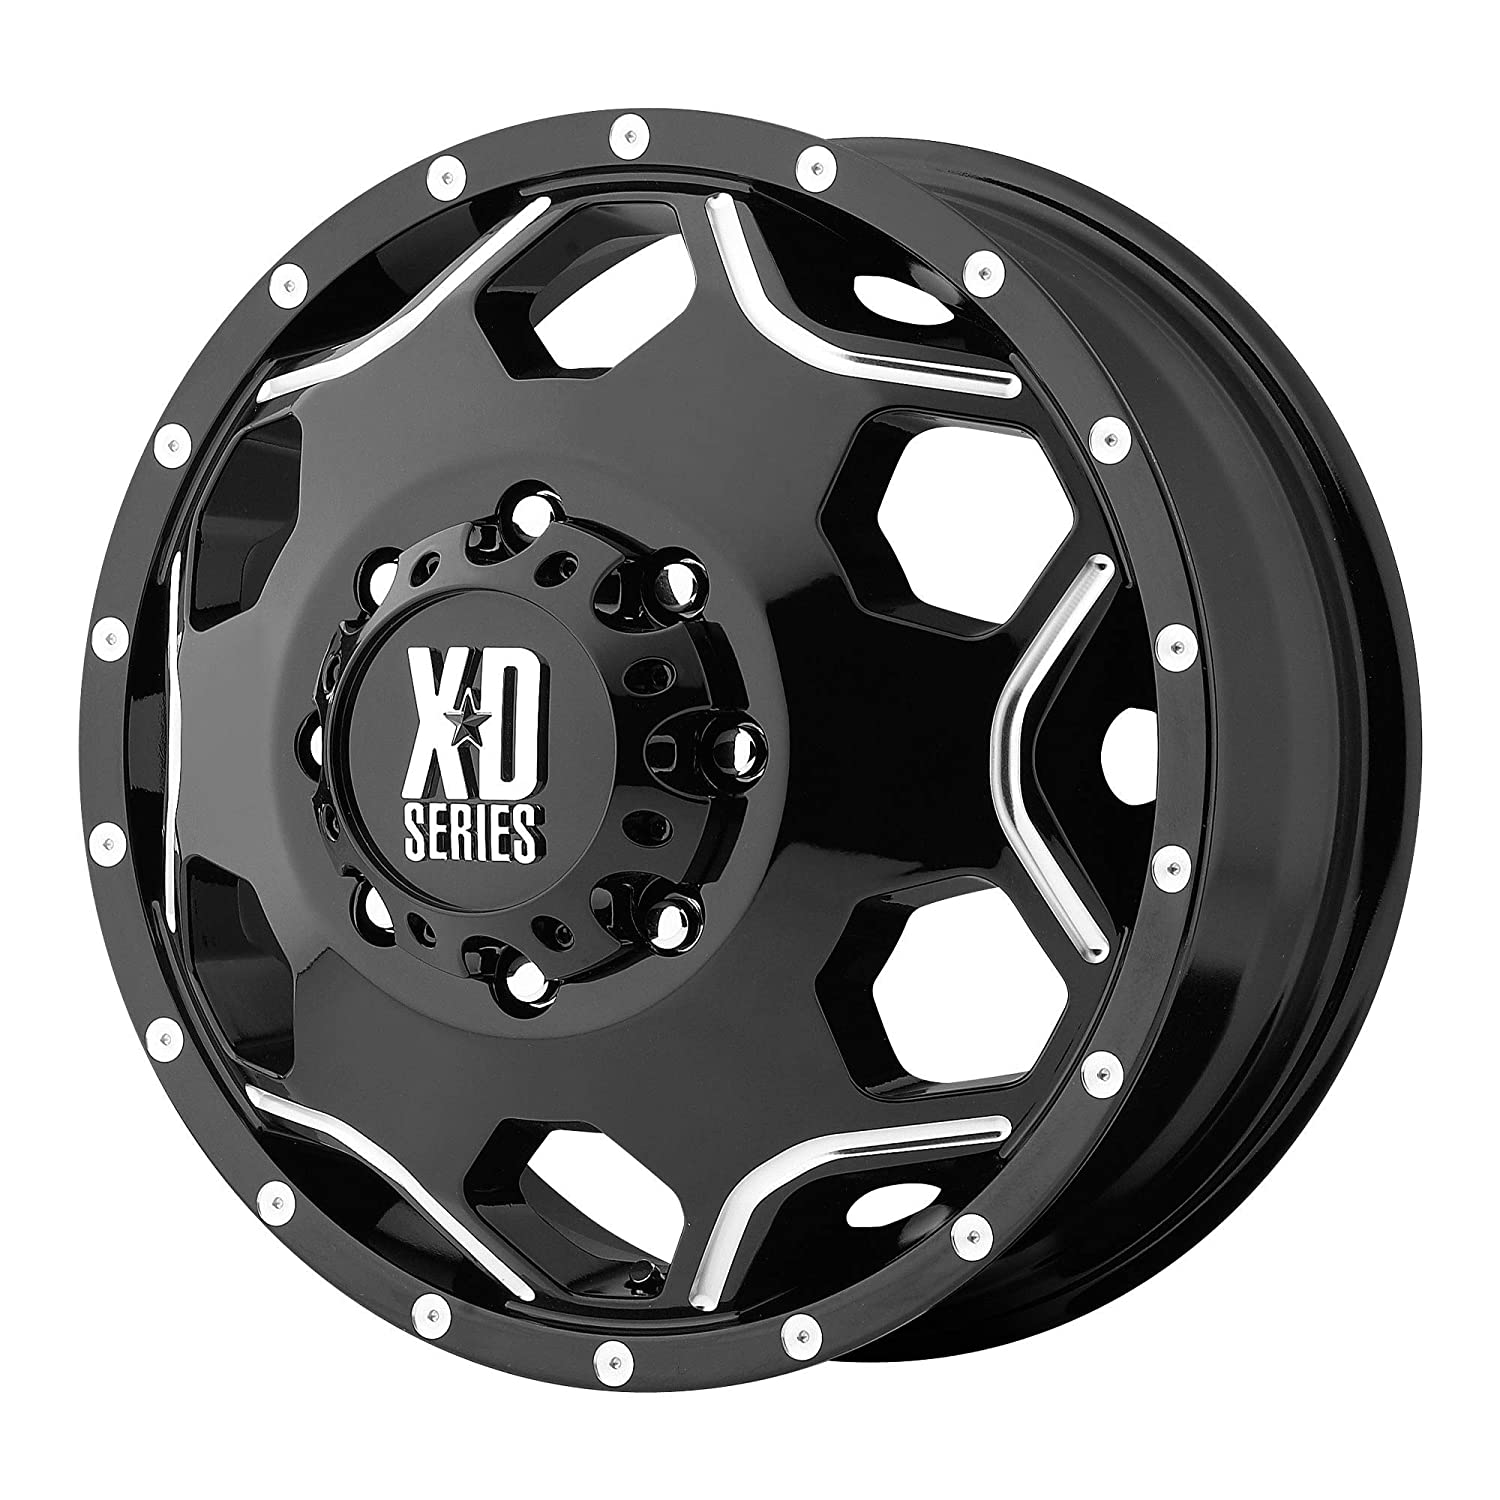 XD SERIES BY KMC WHEELS CRUX DUALLY GLOSS BLACK W//MILLED ACCENTS CRUX 17x6 8x200.00 DUALLY GLOSS BLACK W//MILLED ACCENTS rims -134 mm